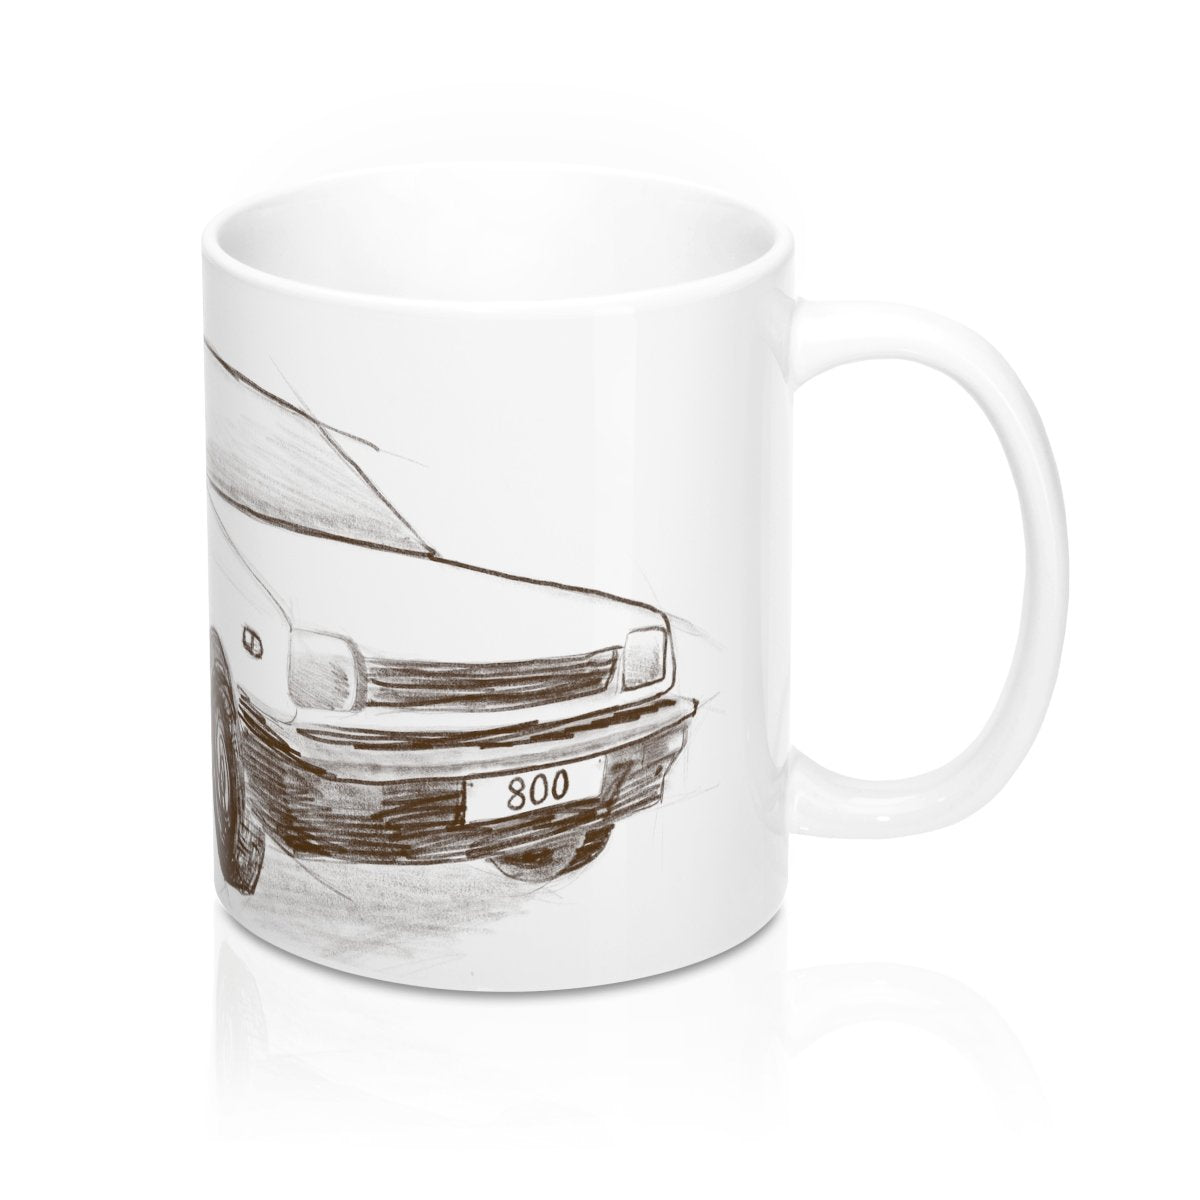 Maruti 800 Ceramic Mug 11oz